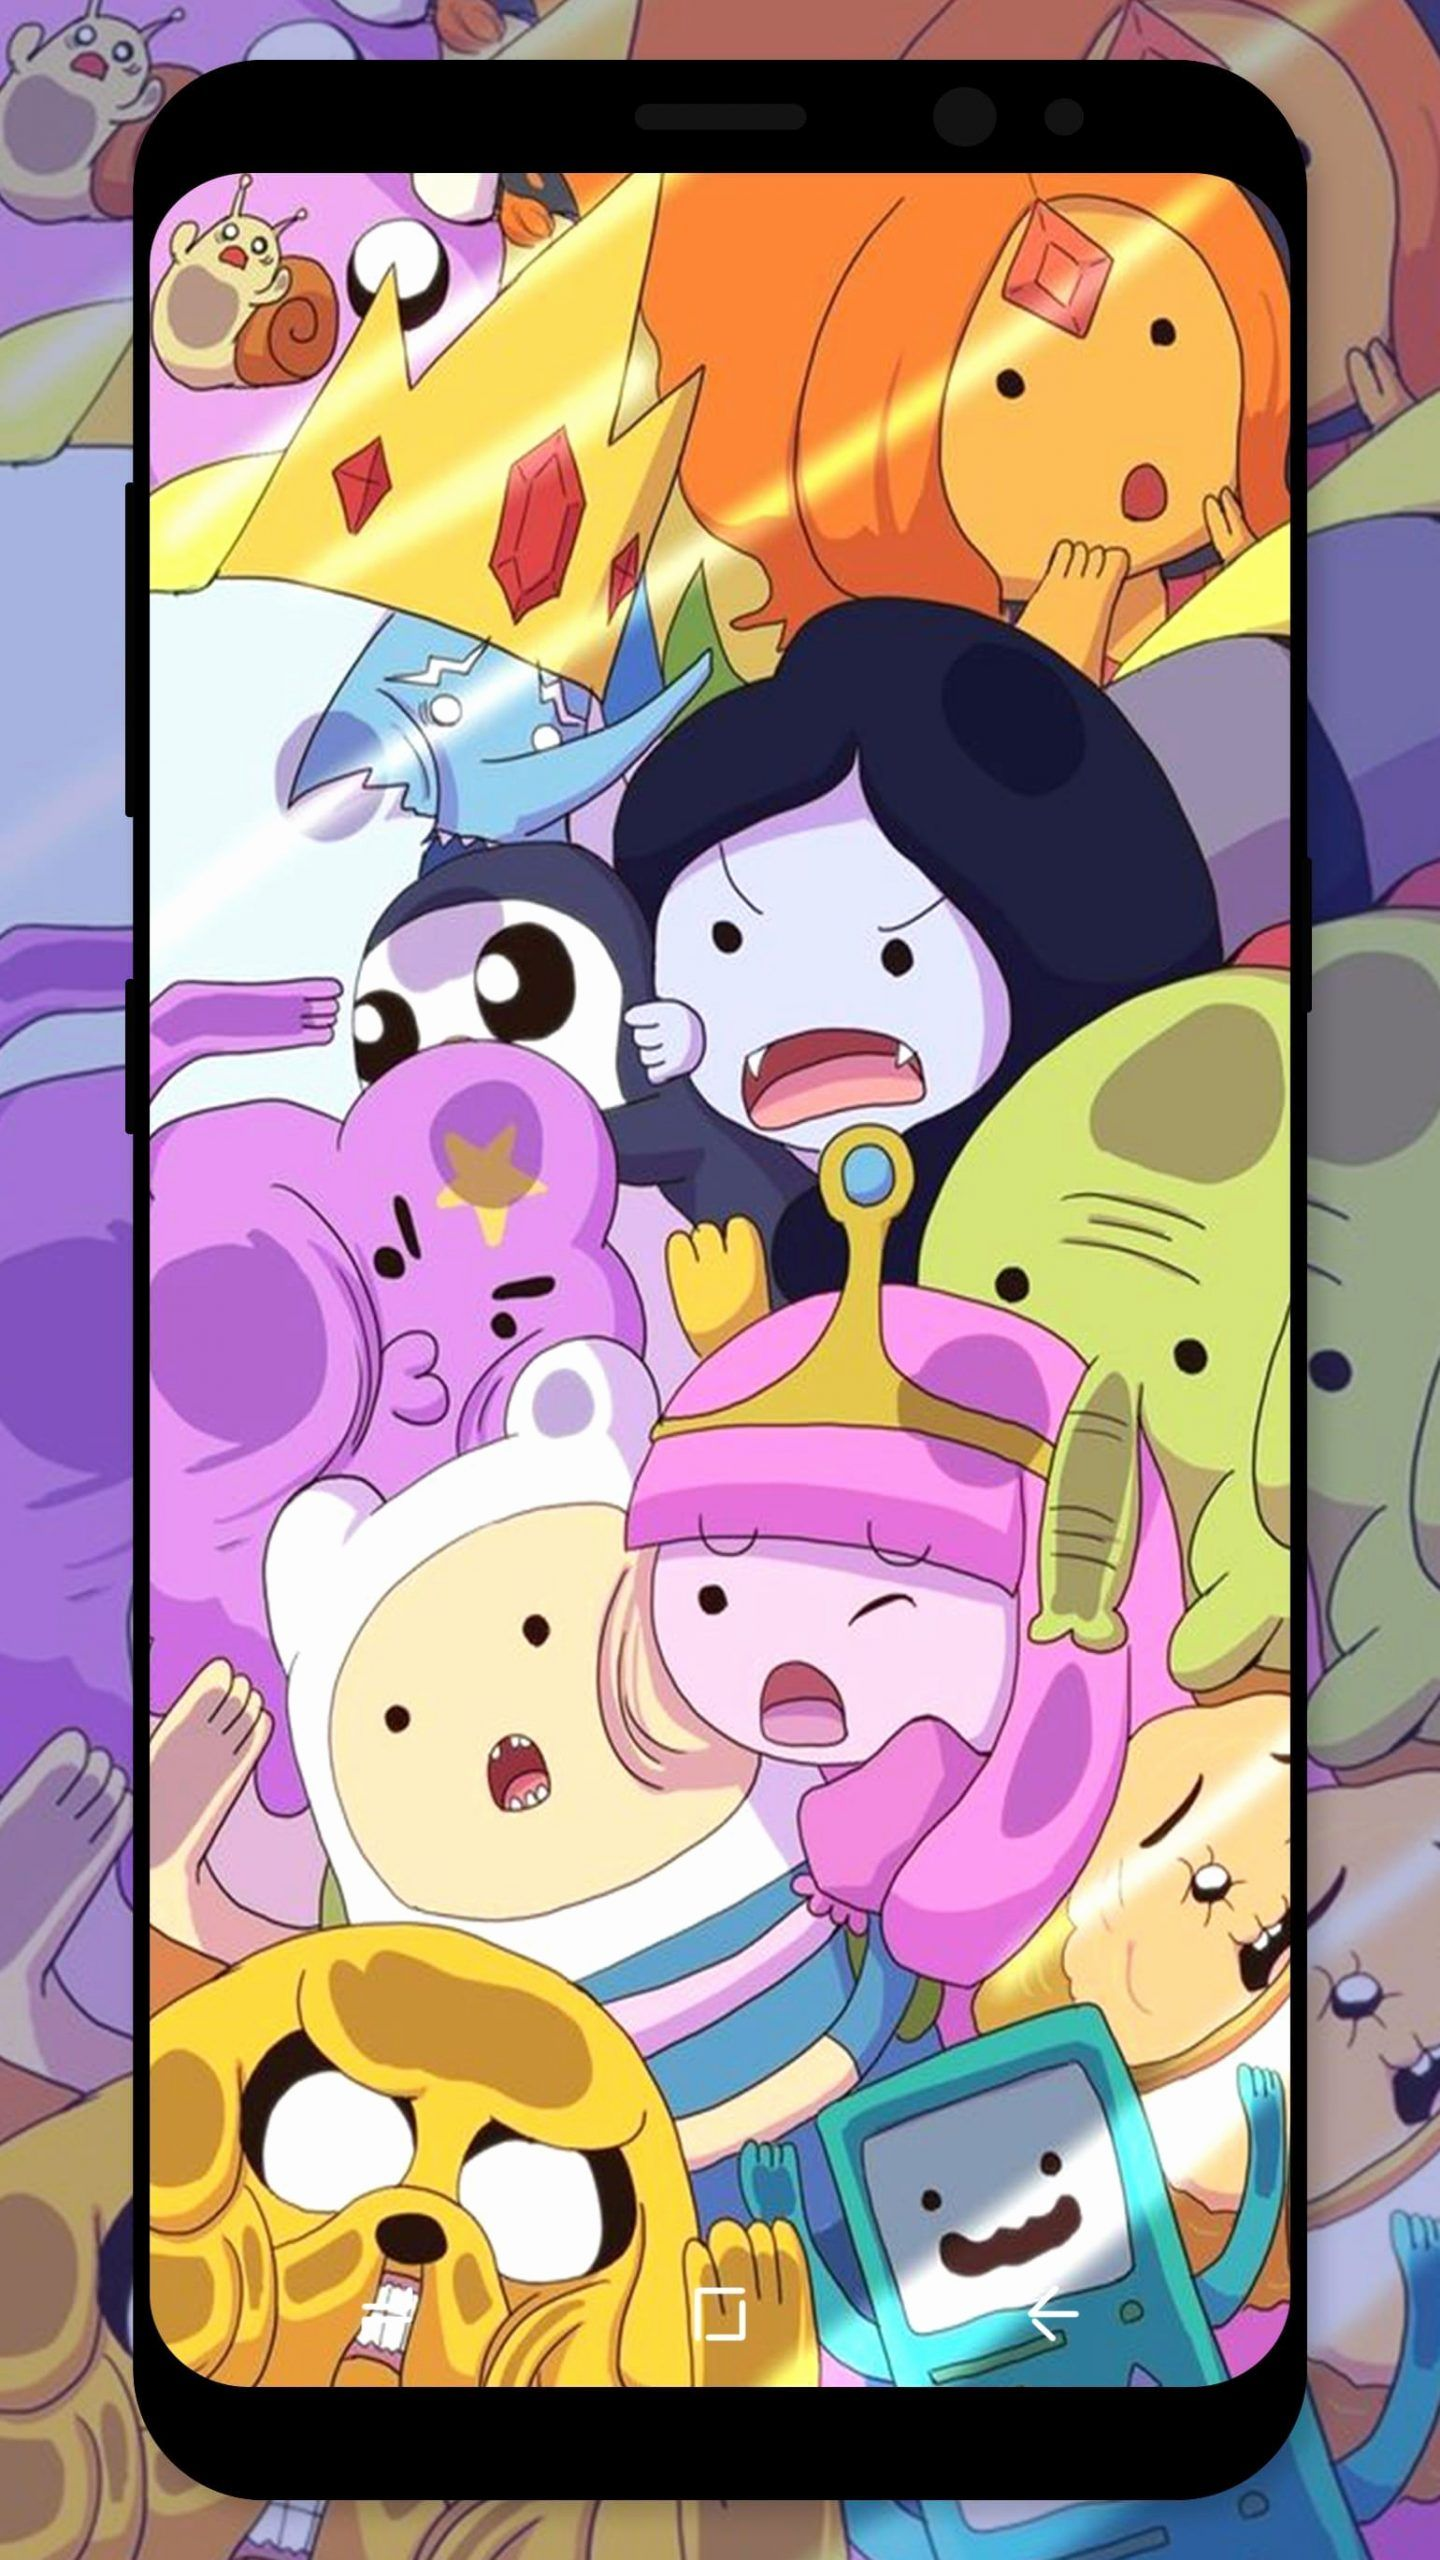 Free Download Adventure Time Iphone Backgrounds Wallpaper Wiki Adventure Time Wallpaper Adventure Time Iphone Wallpaper Adventure Time Background